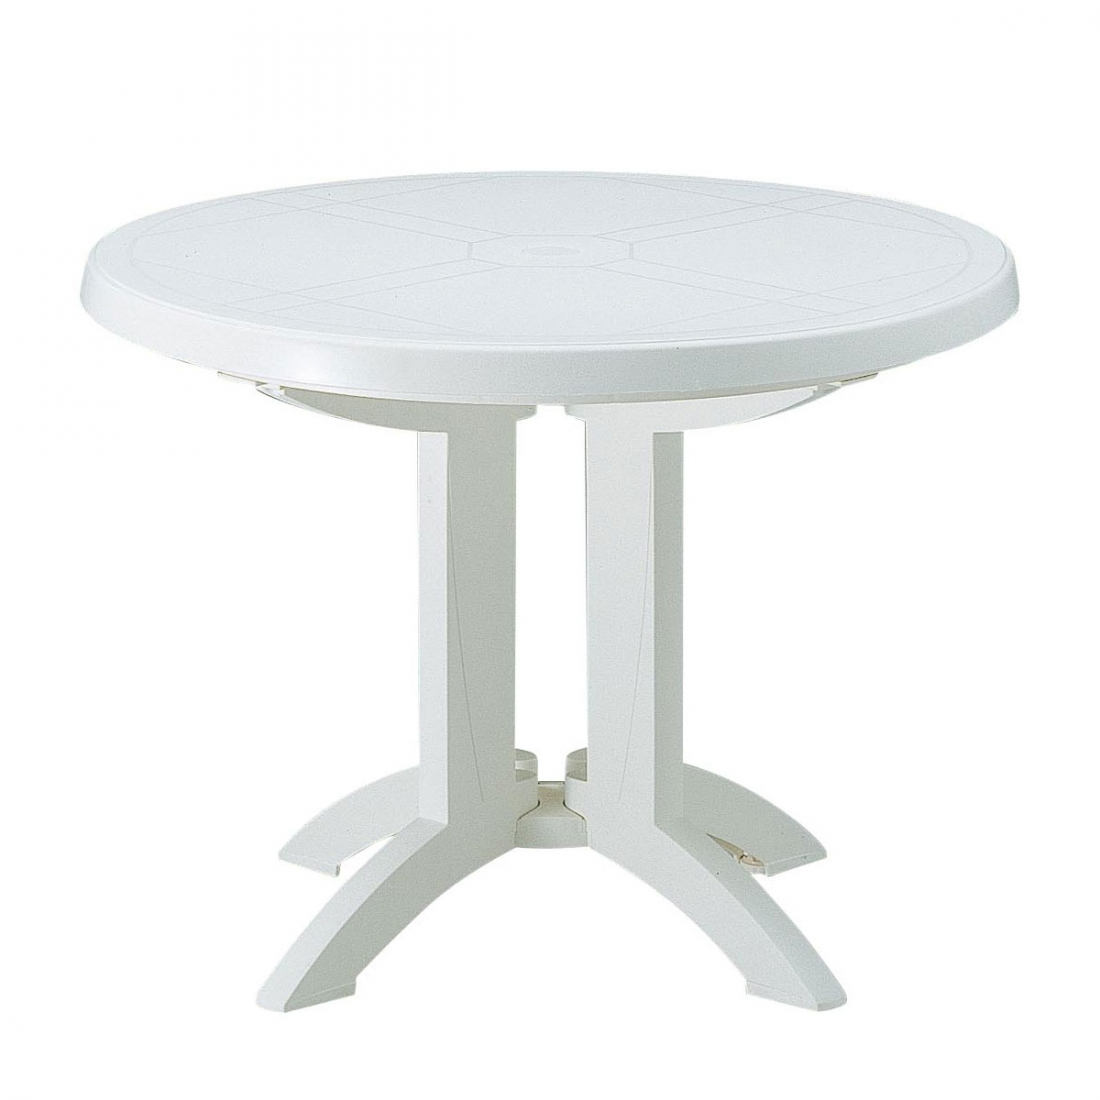 Awesome table jardin ronde blanche plastique images for Table jardin ronde